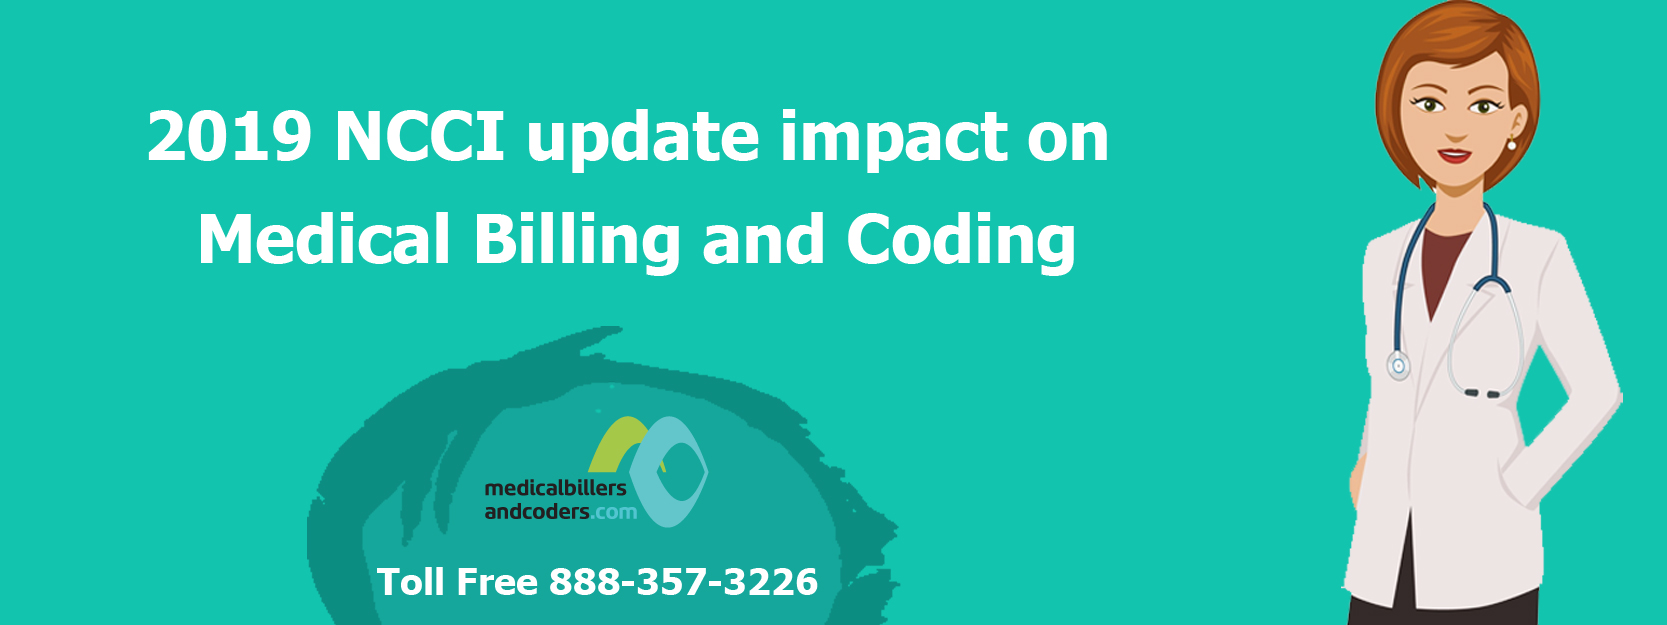 2019 NCCI update impact on medical billing and coding